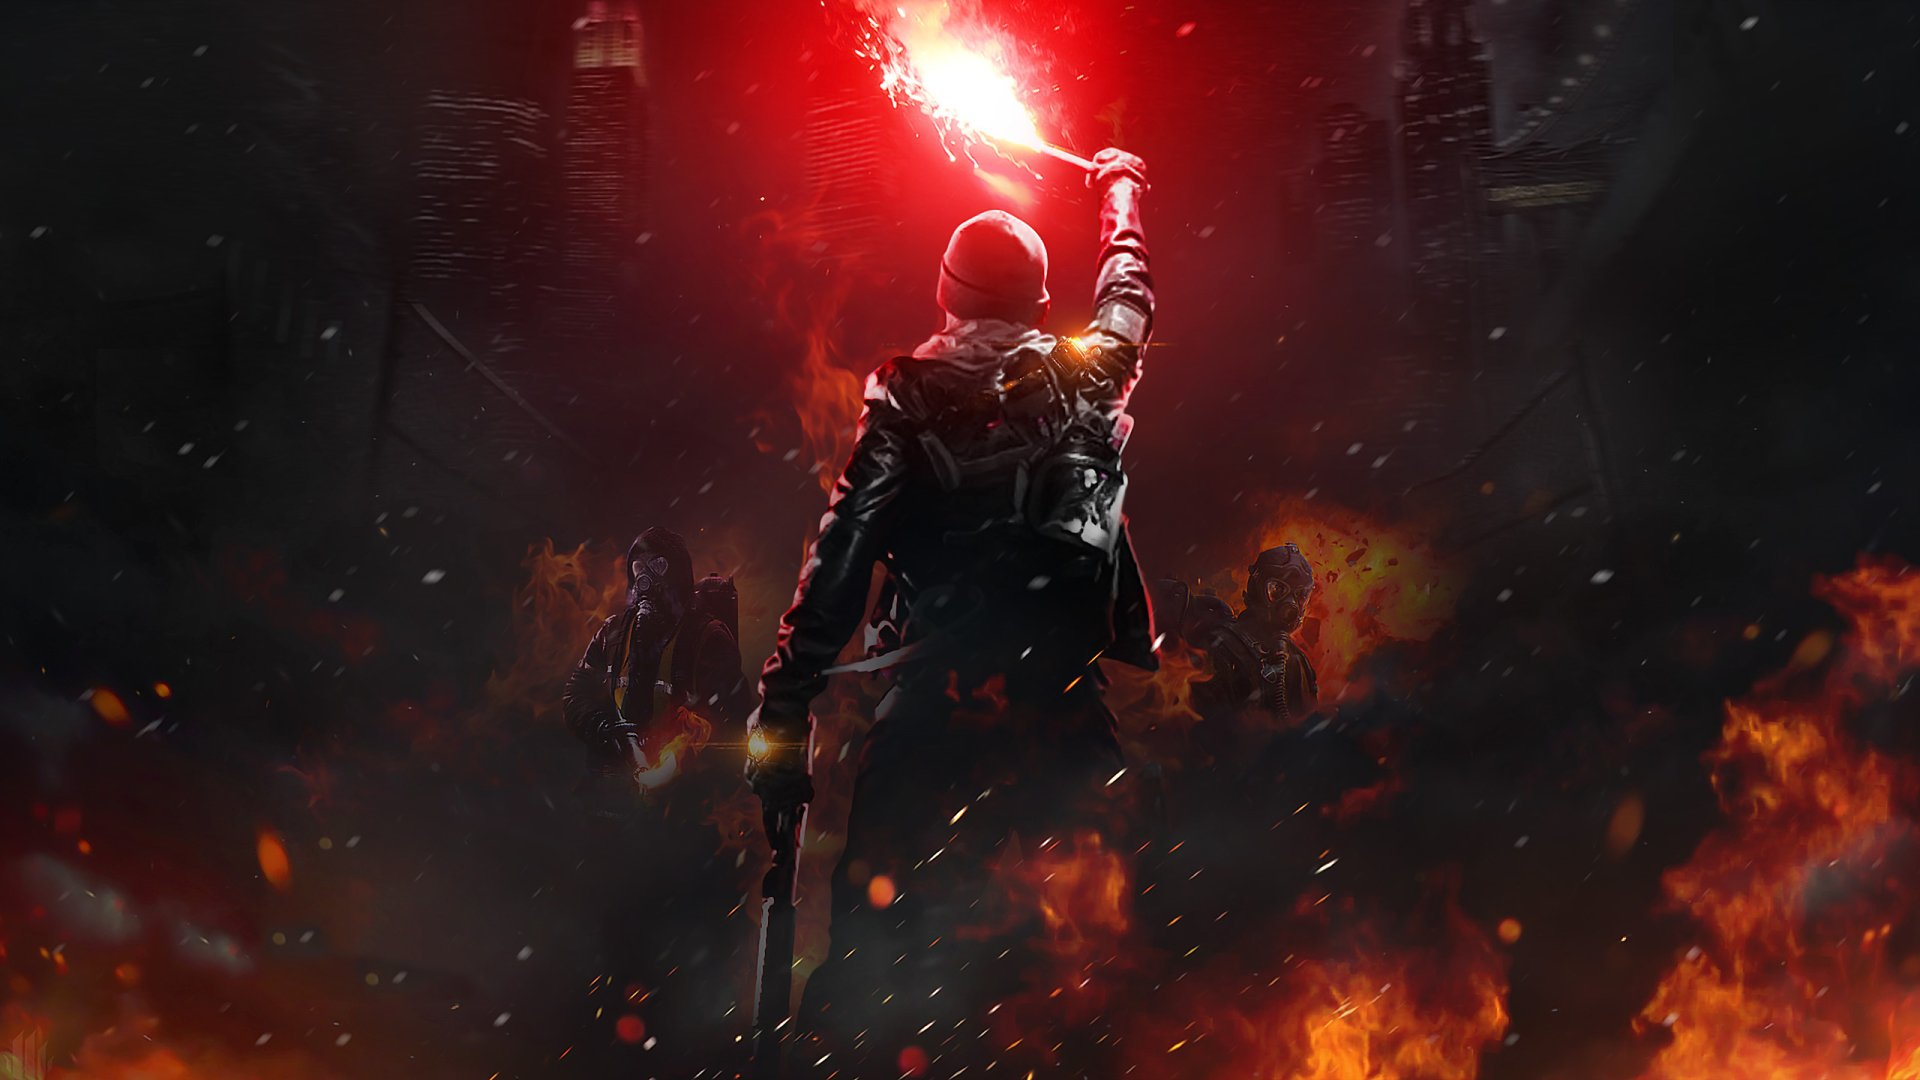 Video Game - Tom Clancy's The Division  Soldier Fire Man City Wallpaper